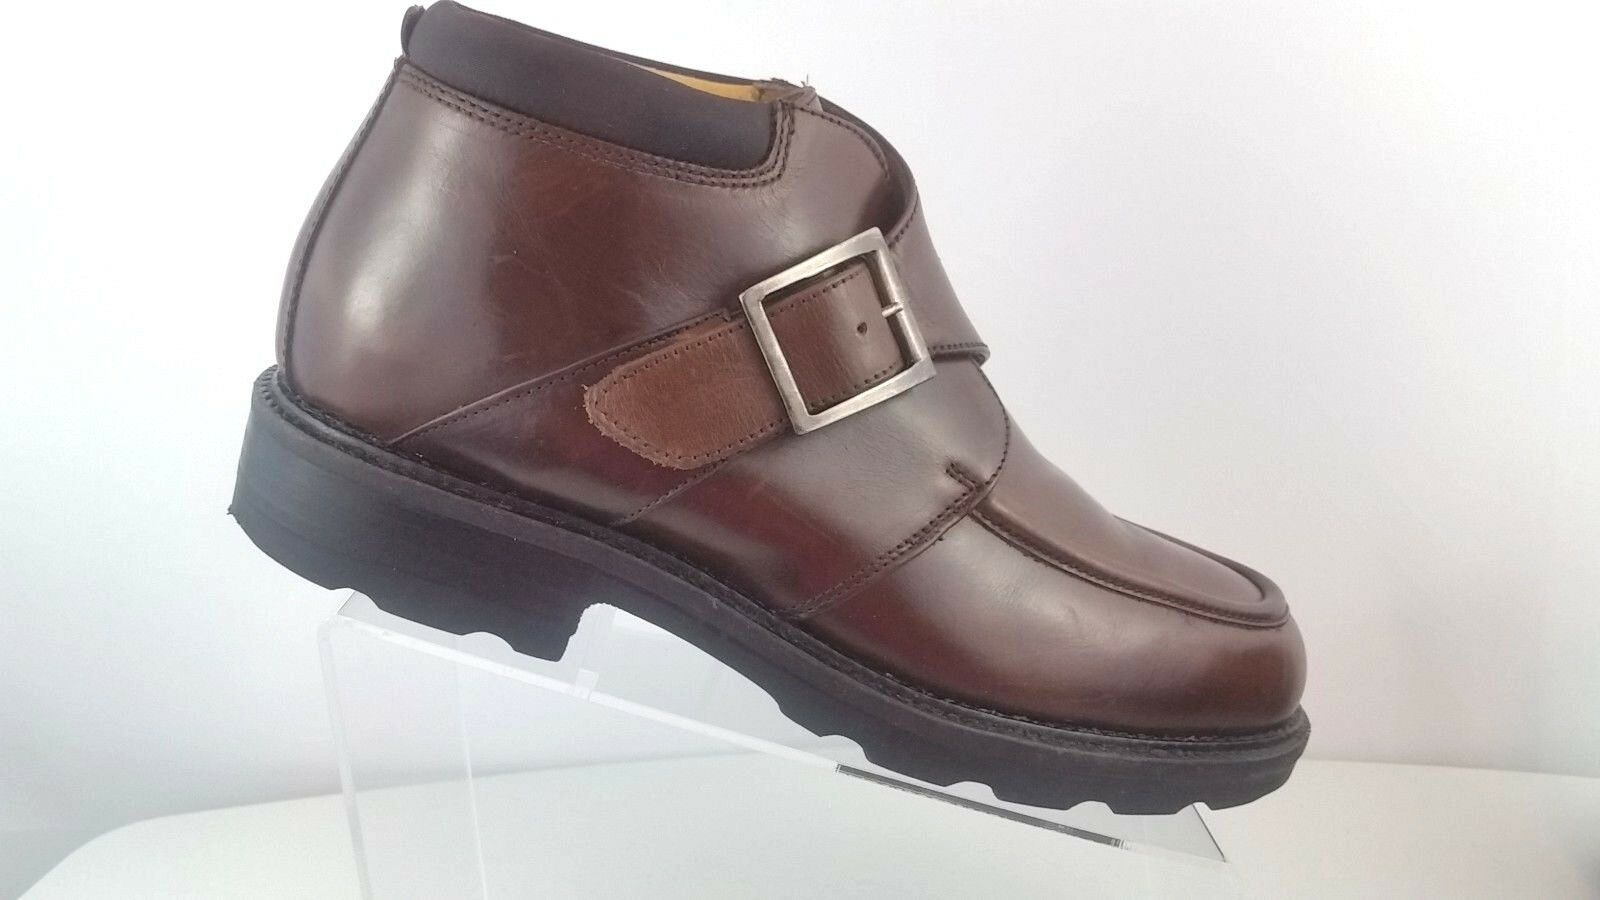 Kenneth Cole Italian Men Brown Leather Ankle Boot Monk Strap G Series size 11.5